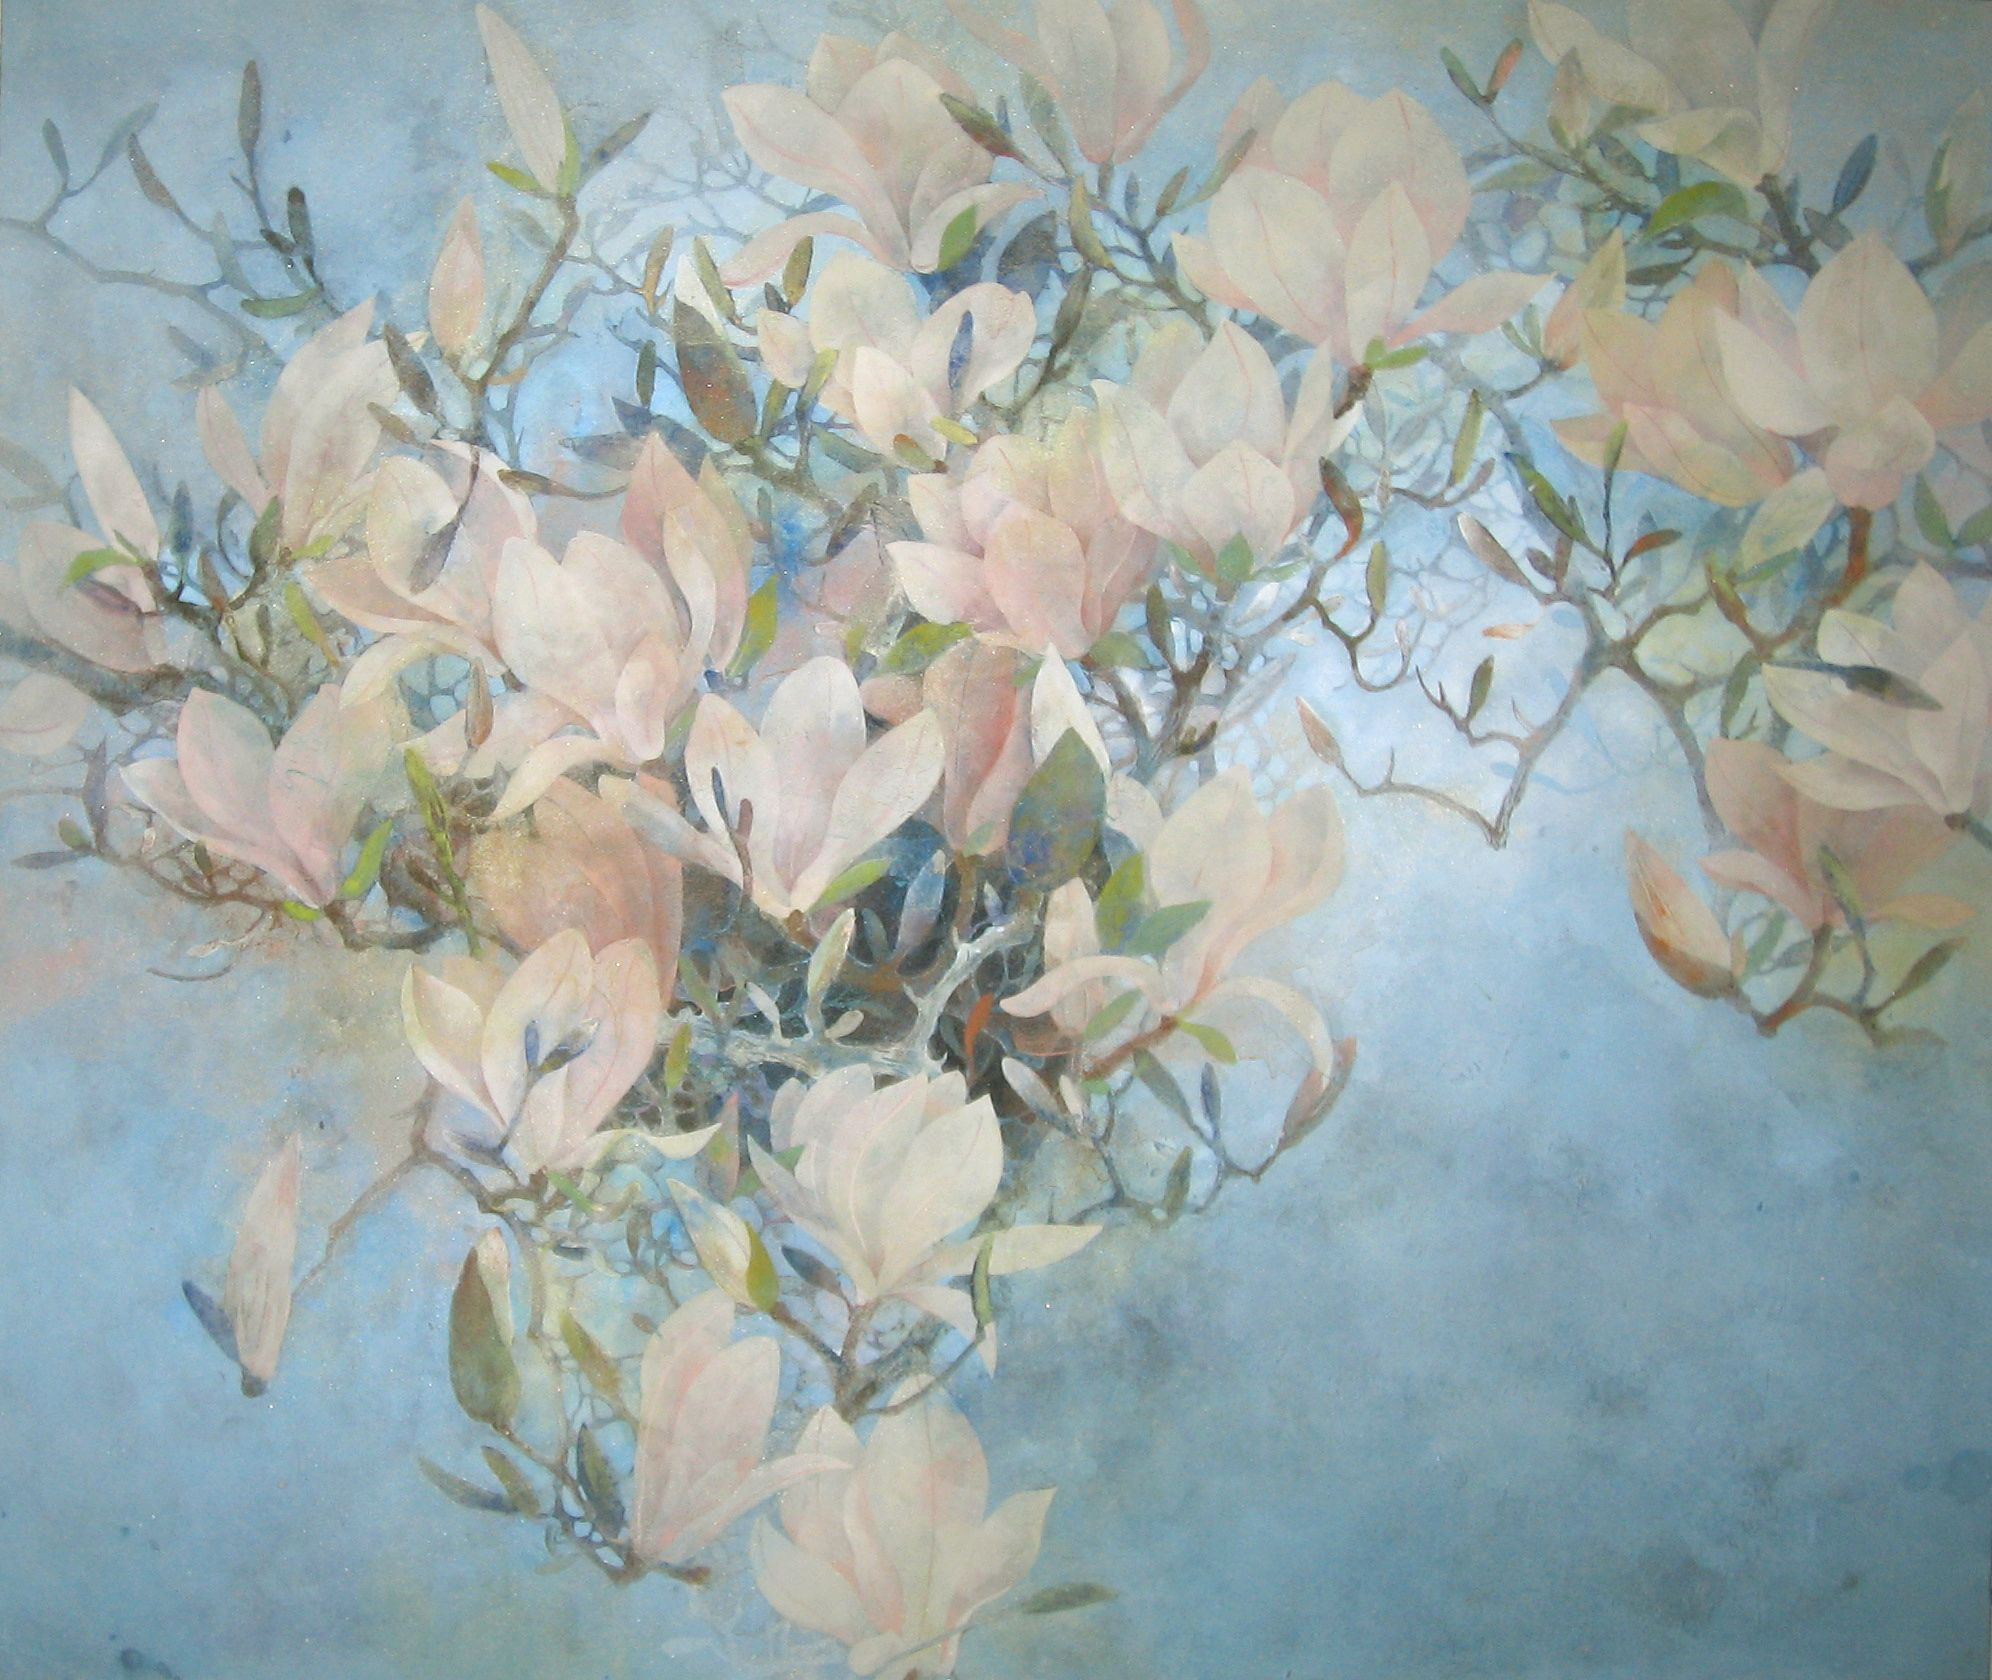 printemps,Chen Yiching,Peinture contemporaine